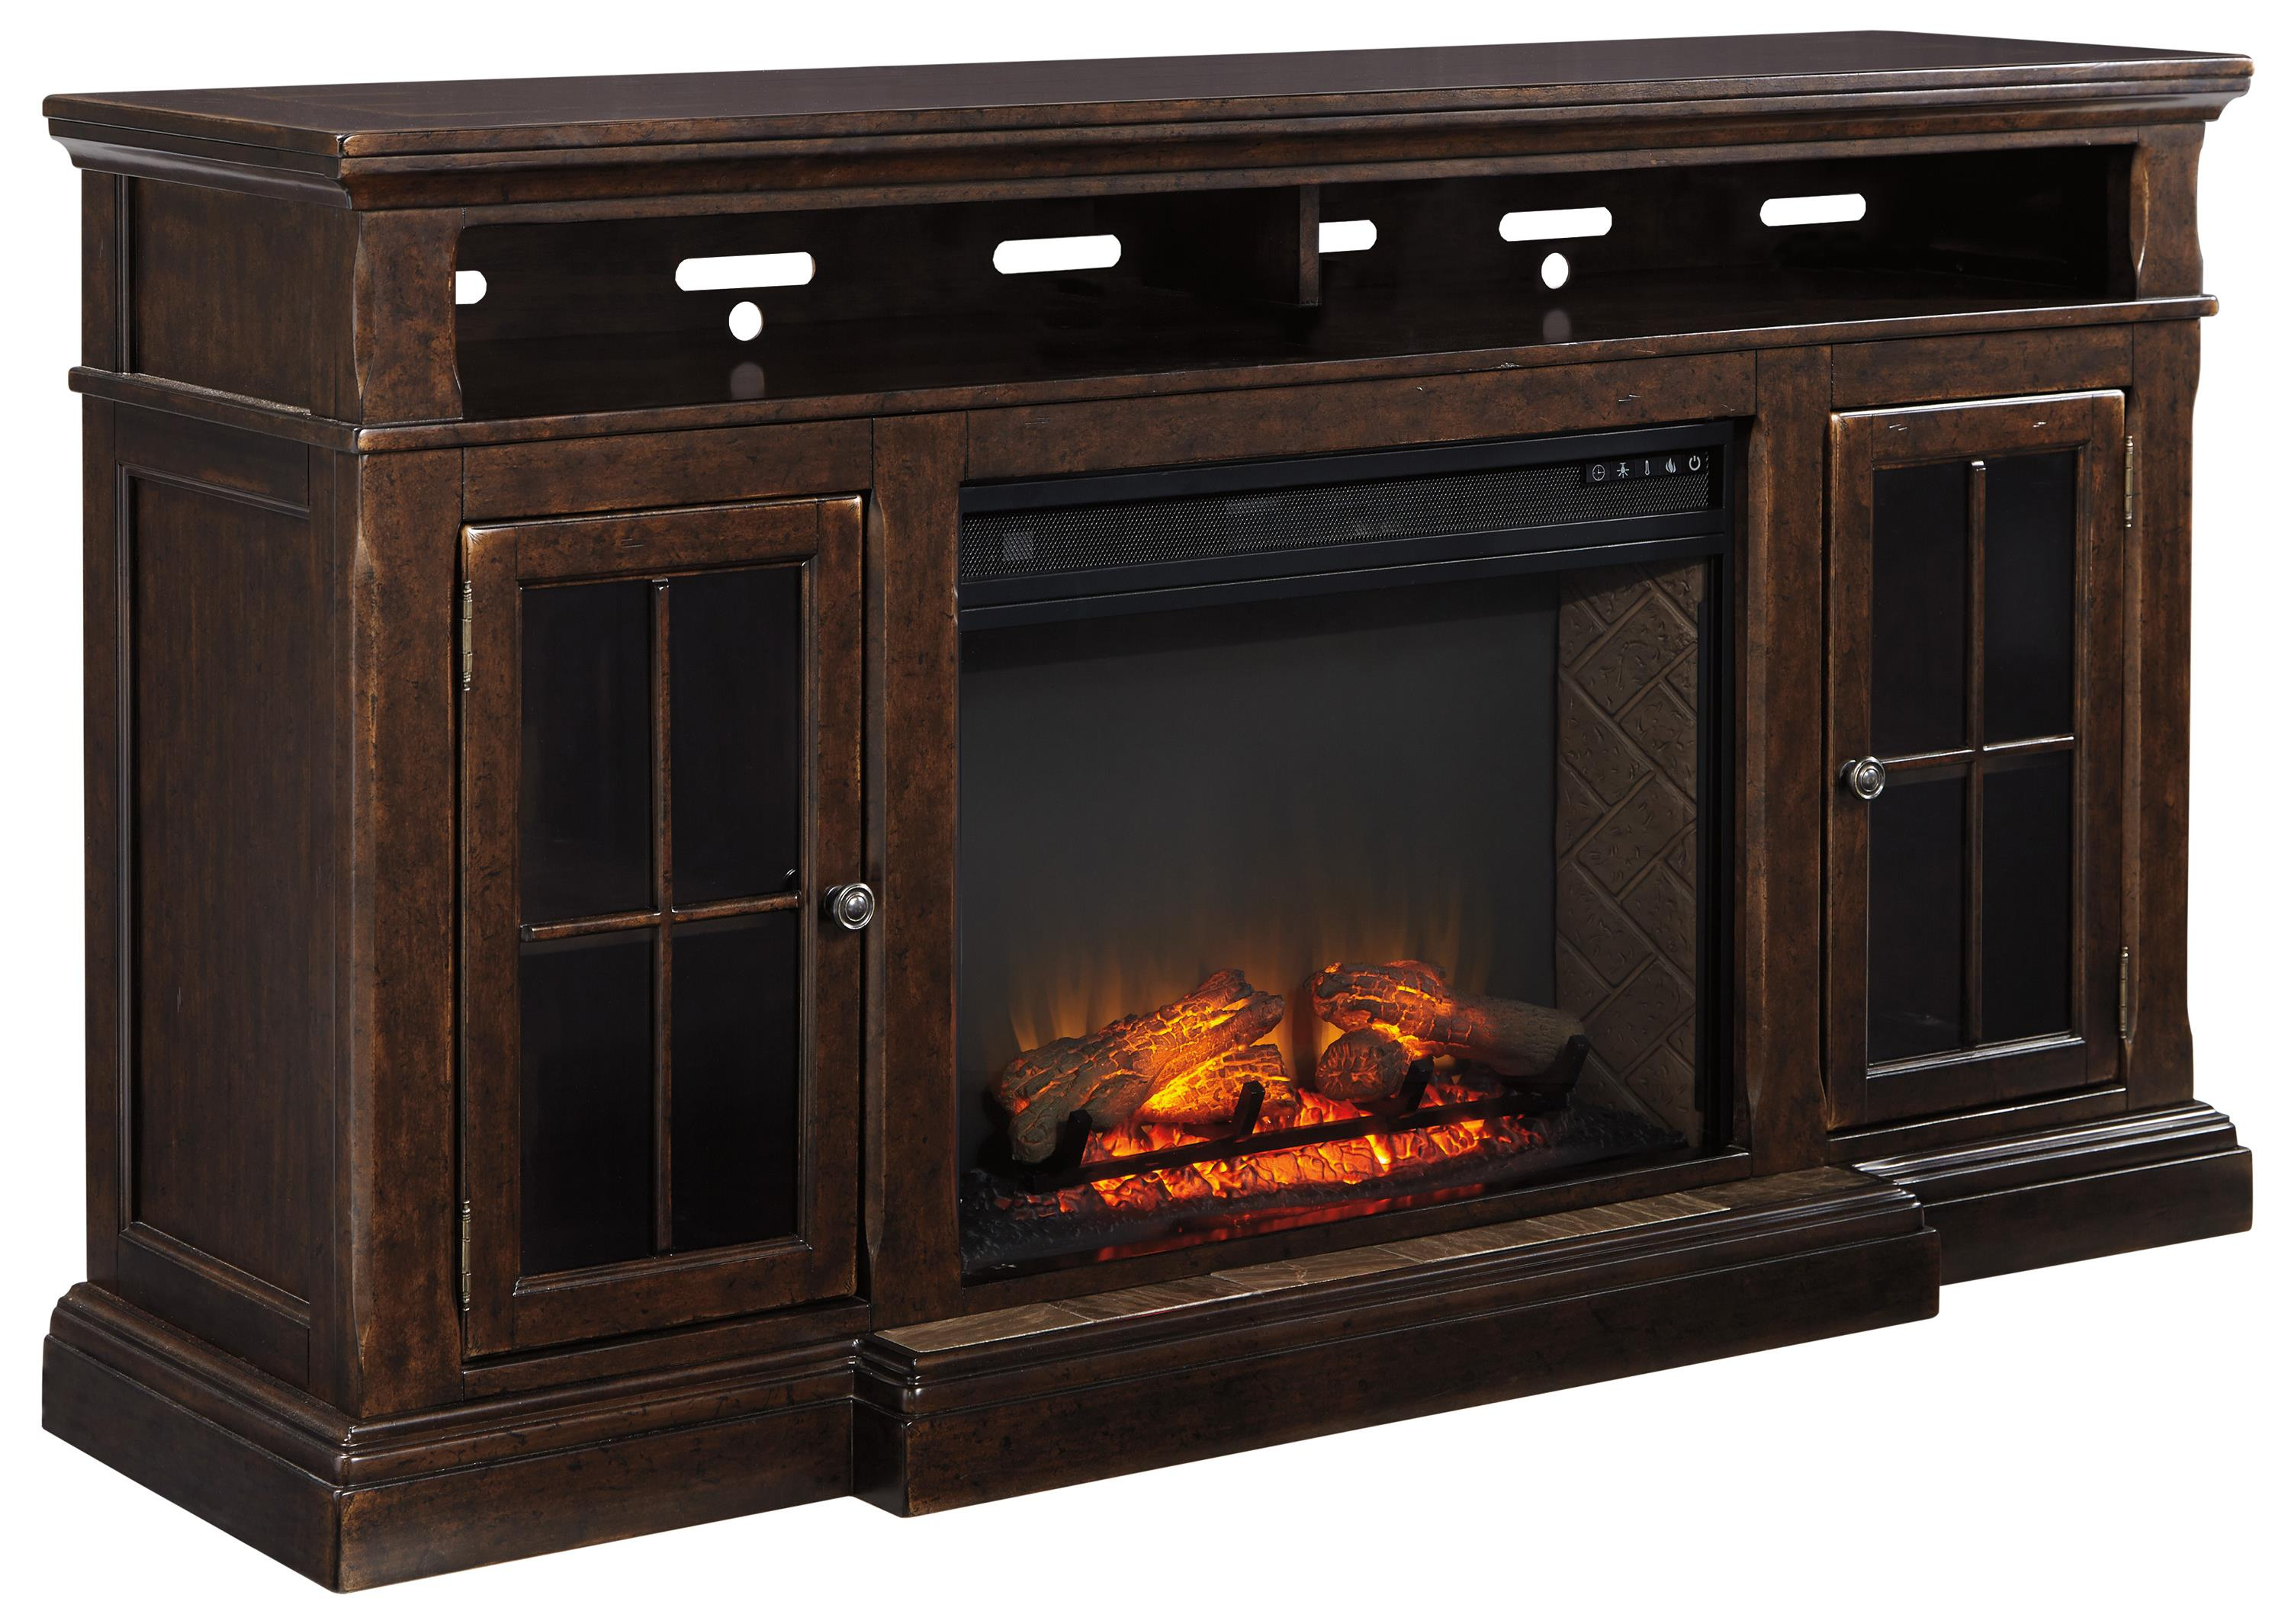 Transitional Extra Large TV Stand W Fireplace Insert By